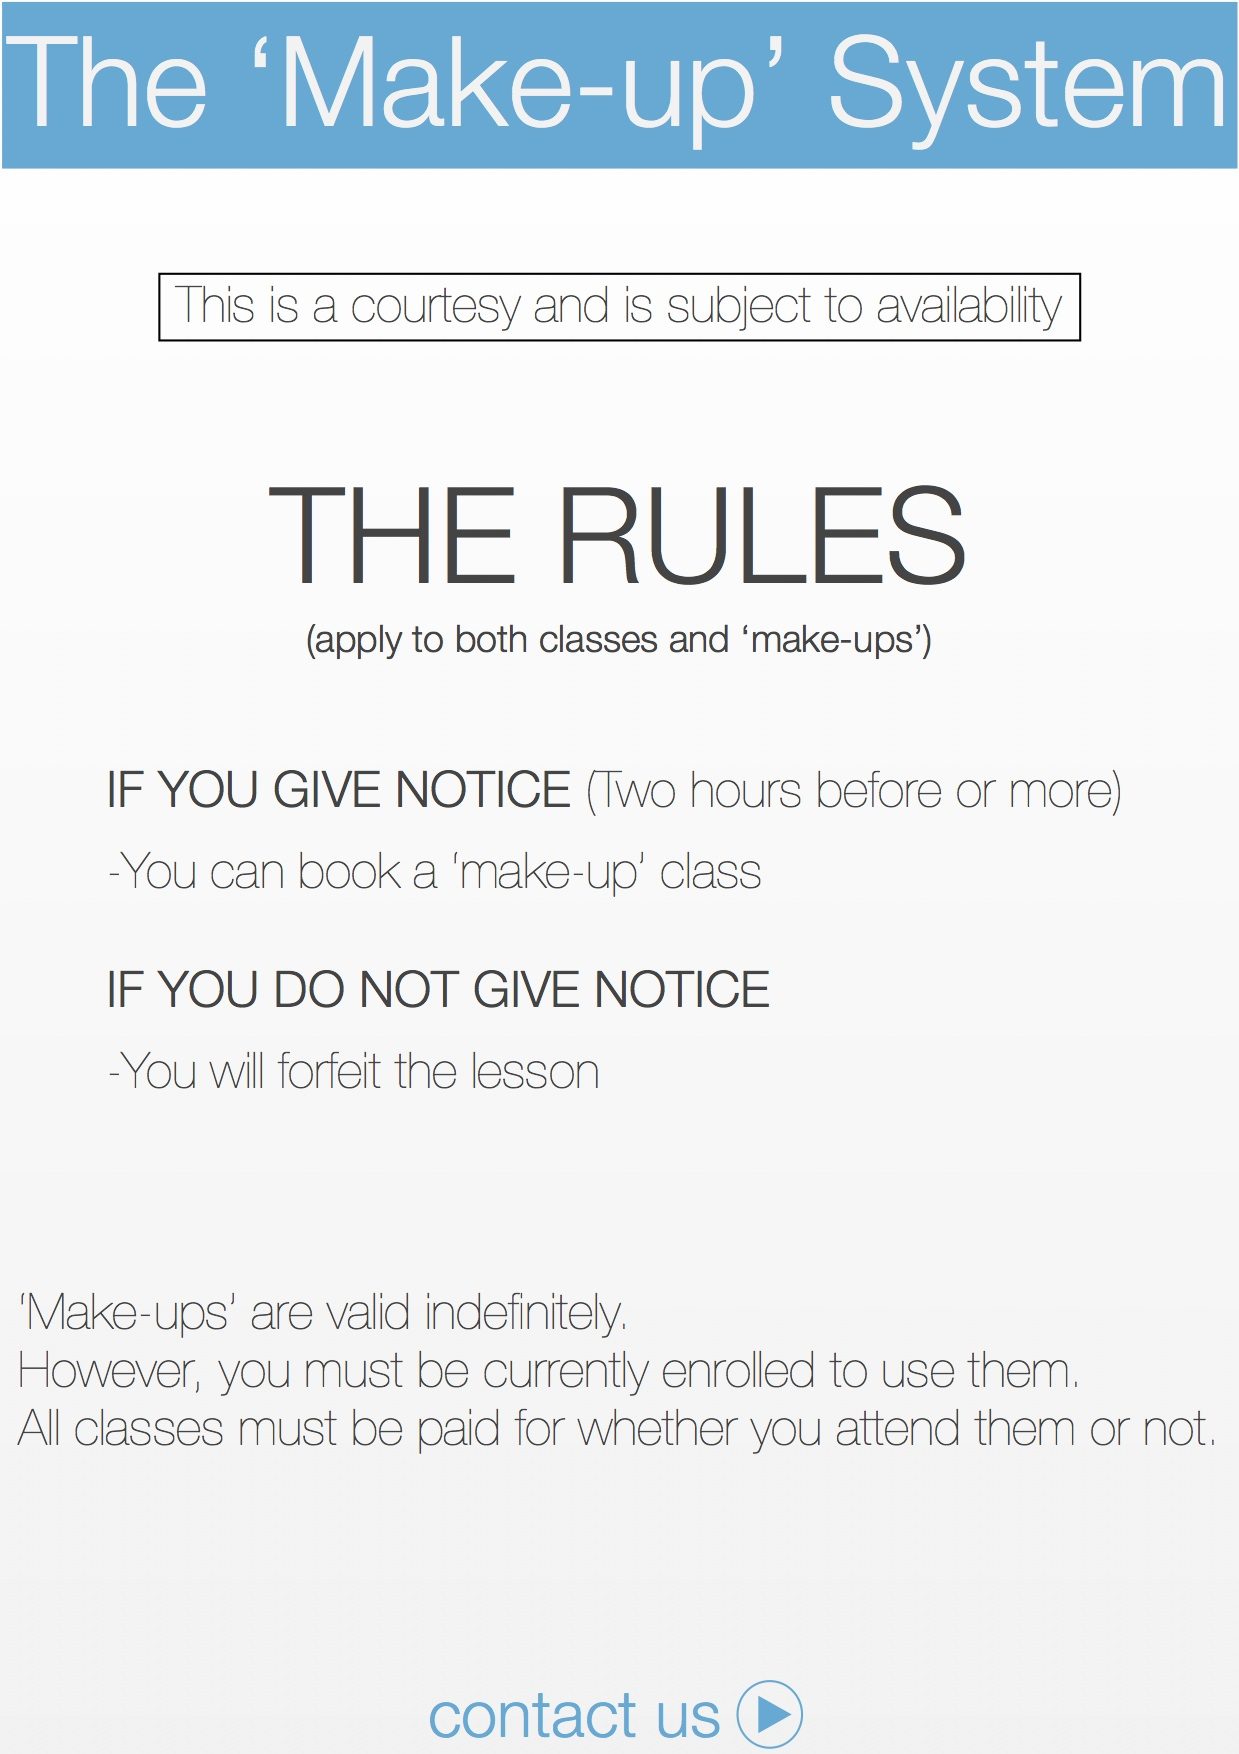 'Make-ups' are valid indefinitely.  However, you must be currently enrolled to use them. All classes must be paid for whether you attend them or not.THE RULES  (apply to both classes and 'make-ups')  IF YOU GIVE NOTICE (Two hours before or more)  -You can book a 'make-up' class  IF YOU DO NOT GIVE NOTICE  -You will forfeit the lesson